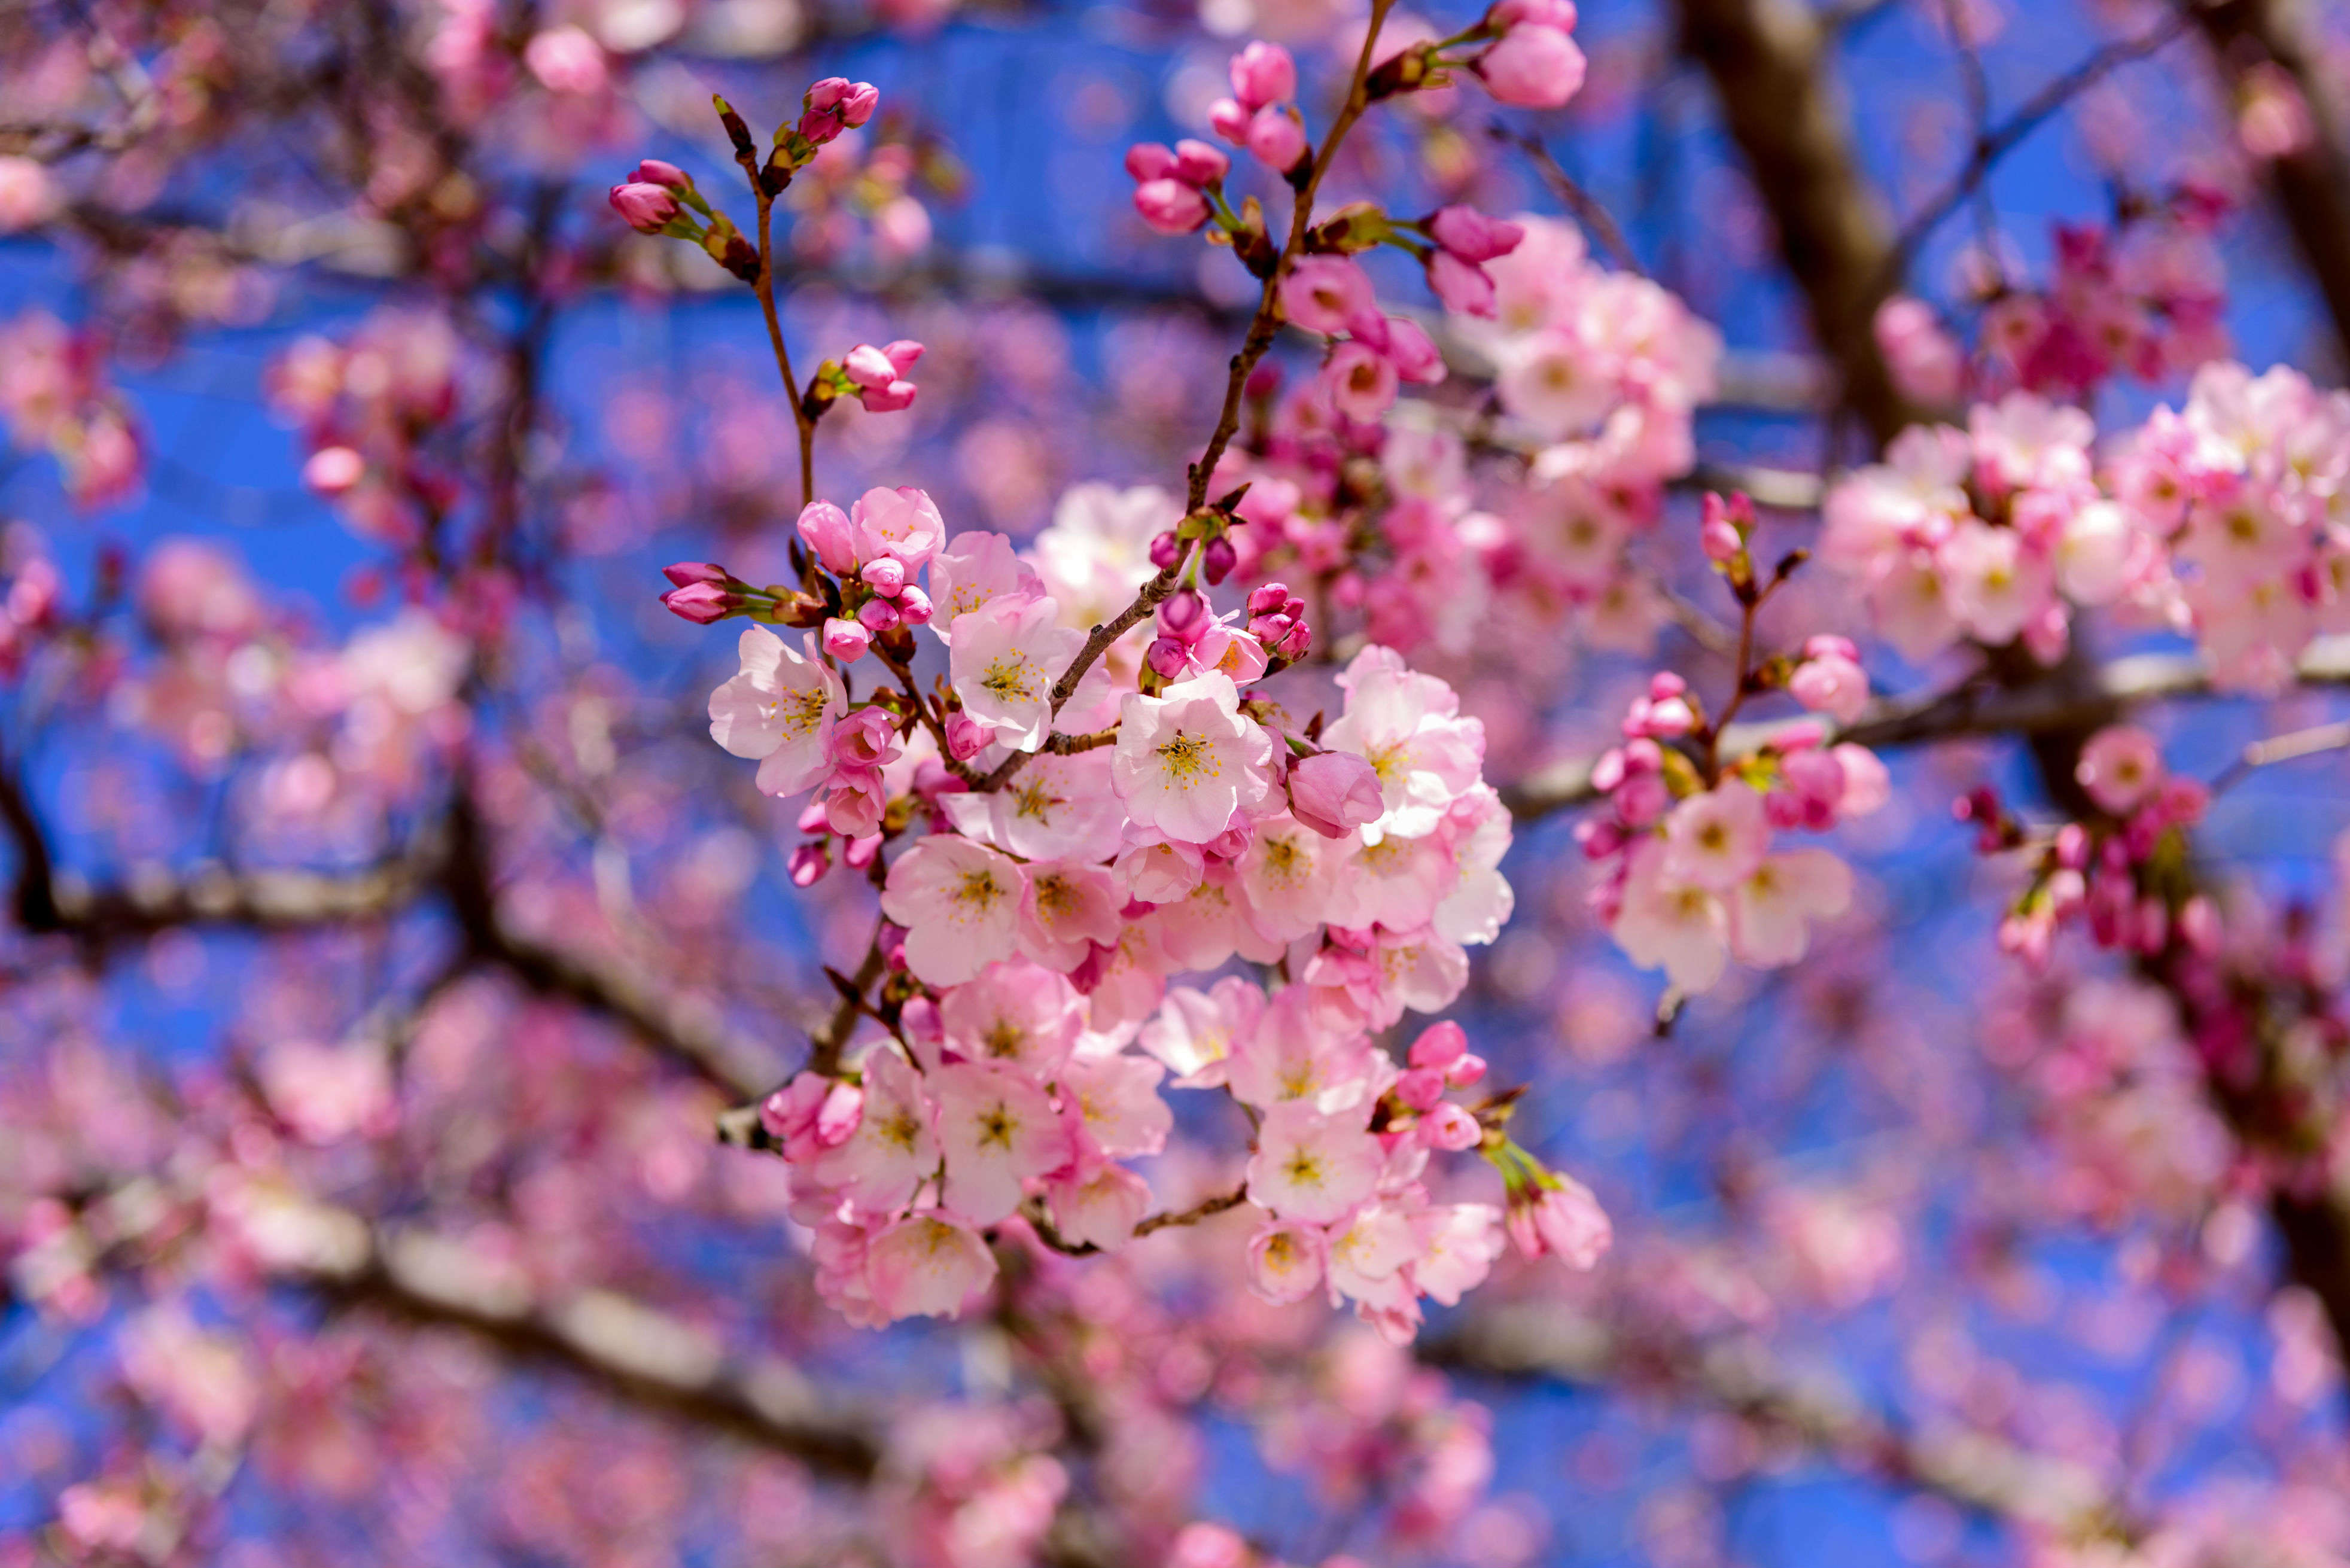 Celebrate Cherry Blossom Festival in Shillong this year